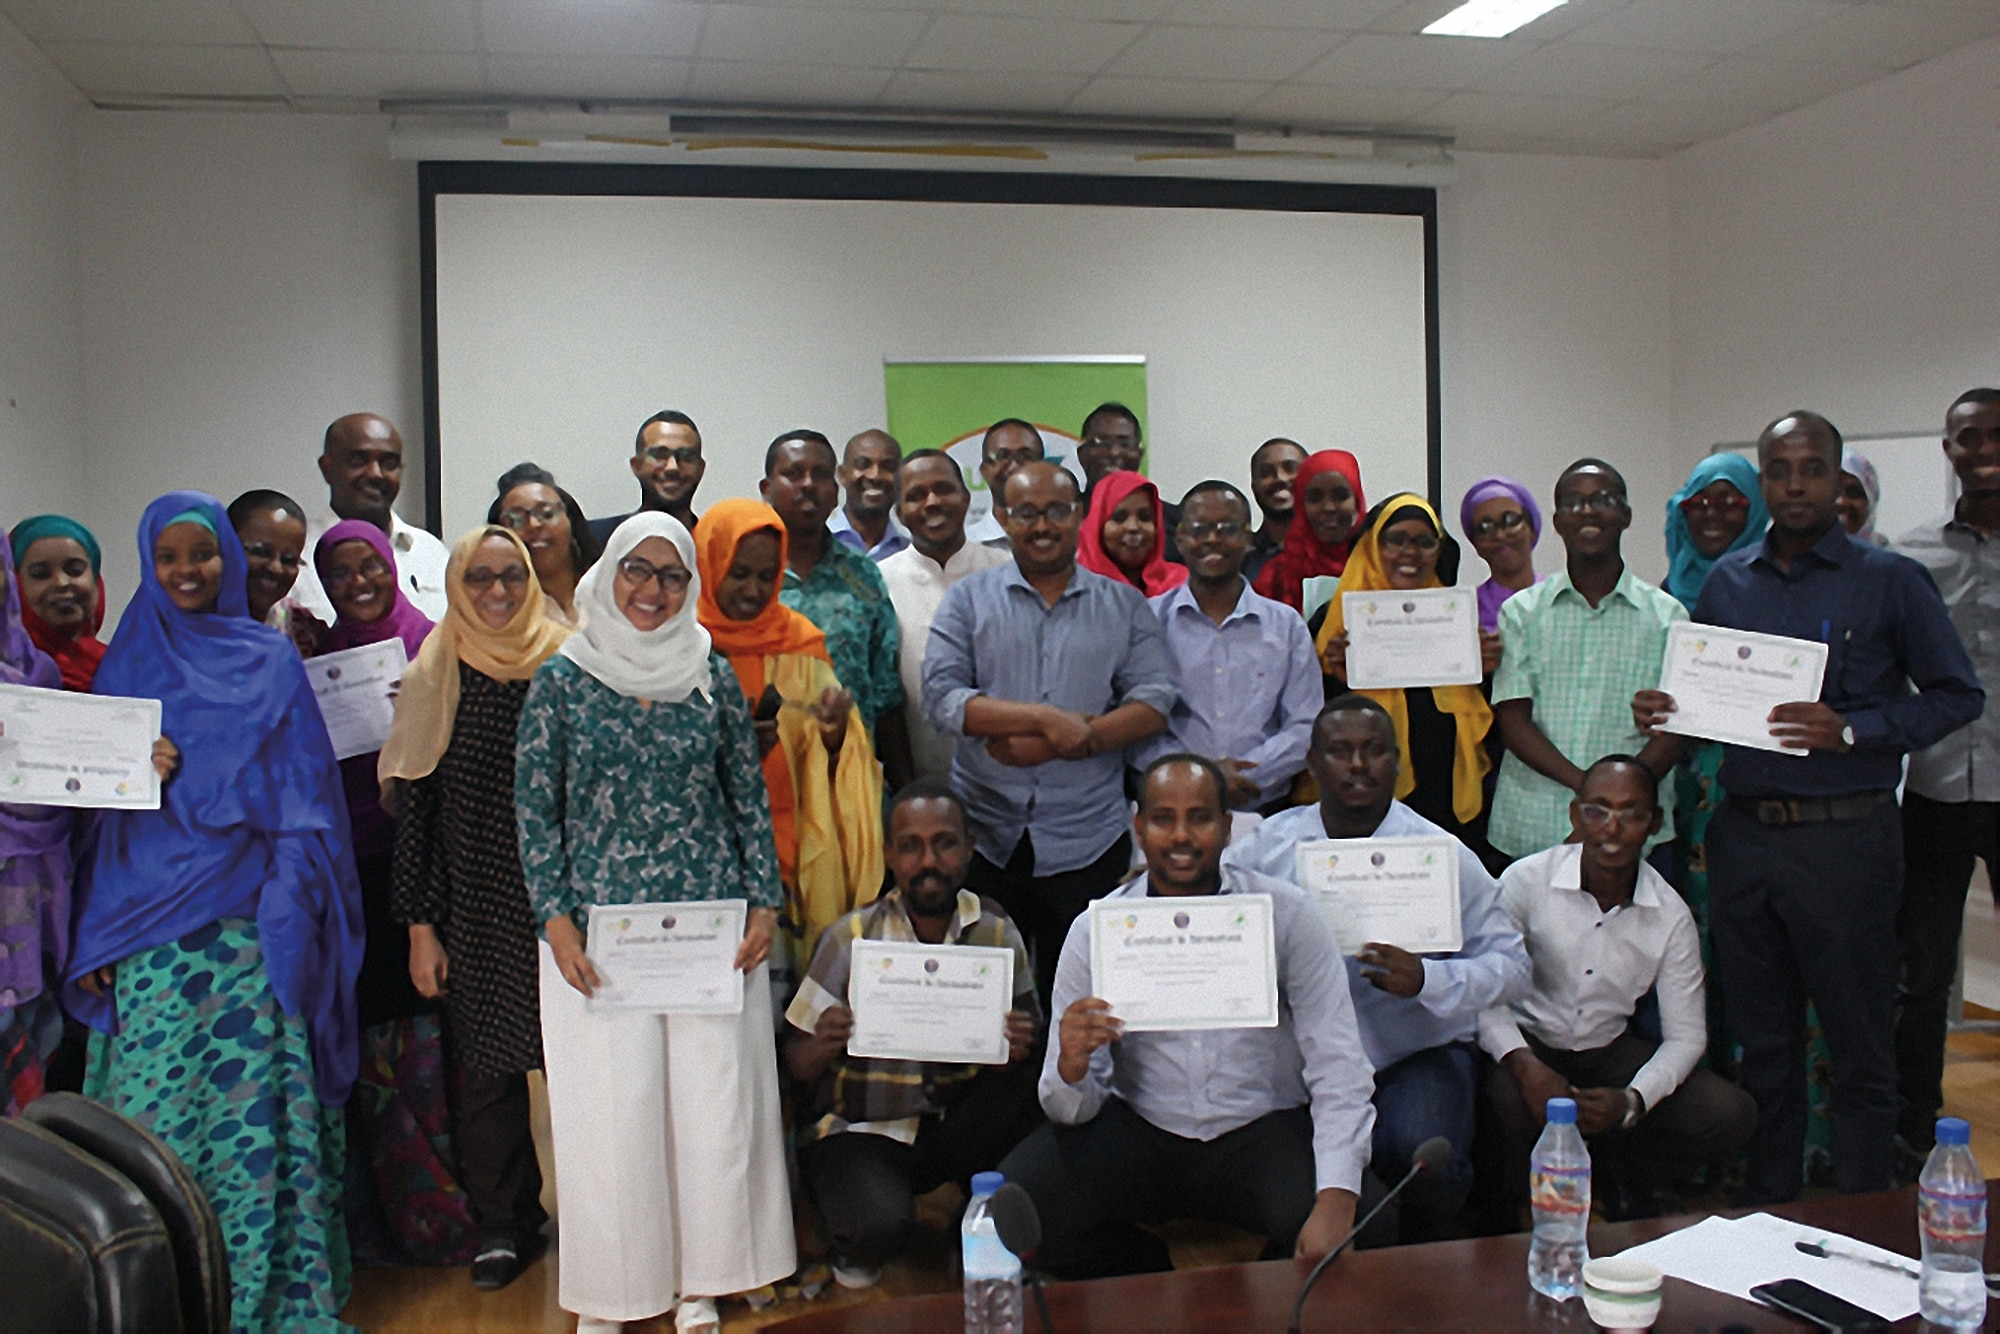 Photo showing Community Change Agents participants showcasing their training certificates after completing the regional exchange program in Djibouti City, Djibouti, August 2018. [Uganda Muslim Youth Development Forum]